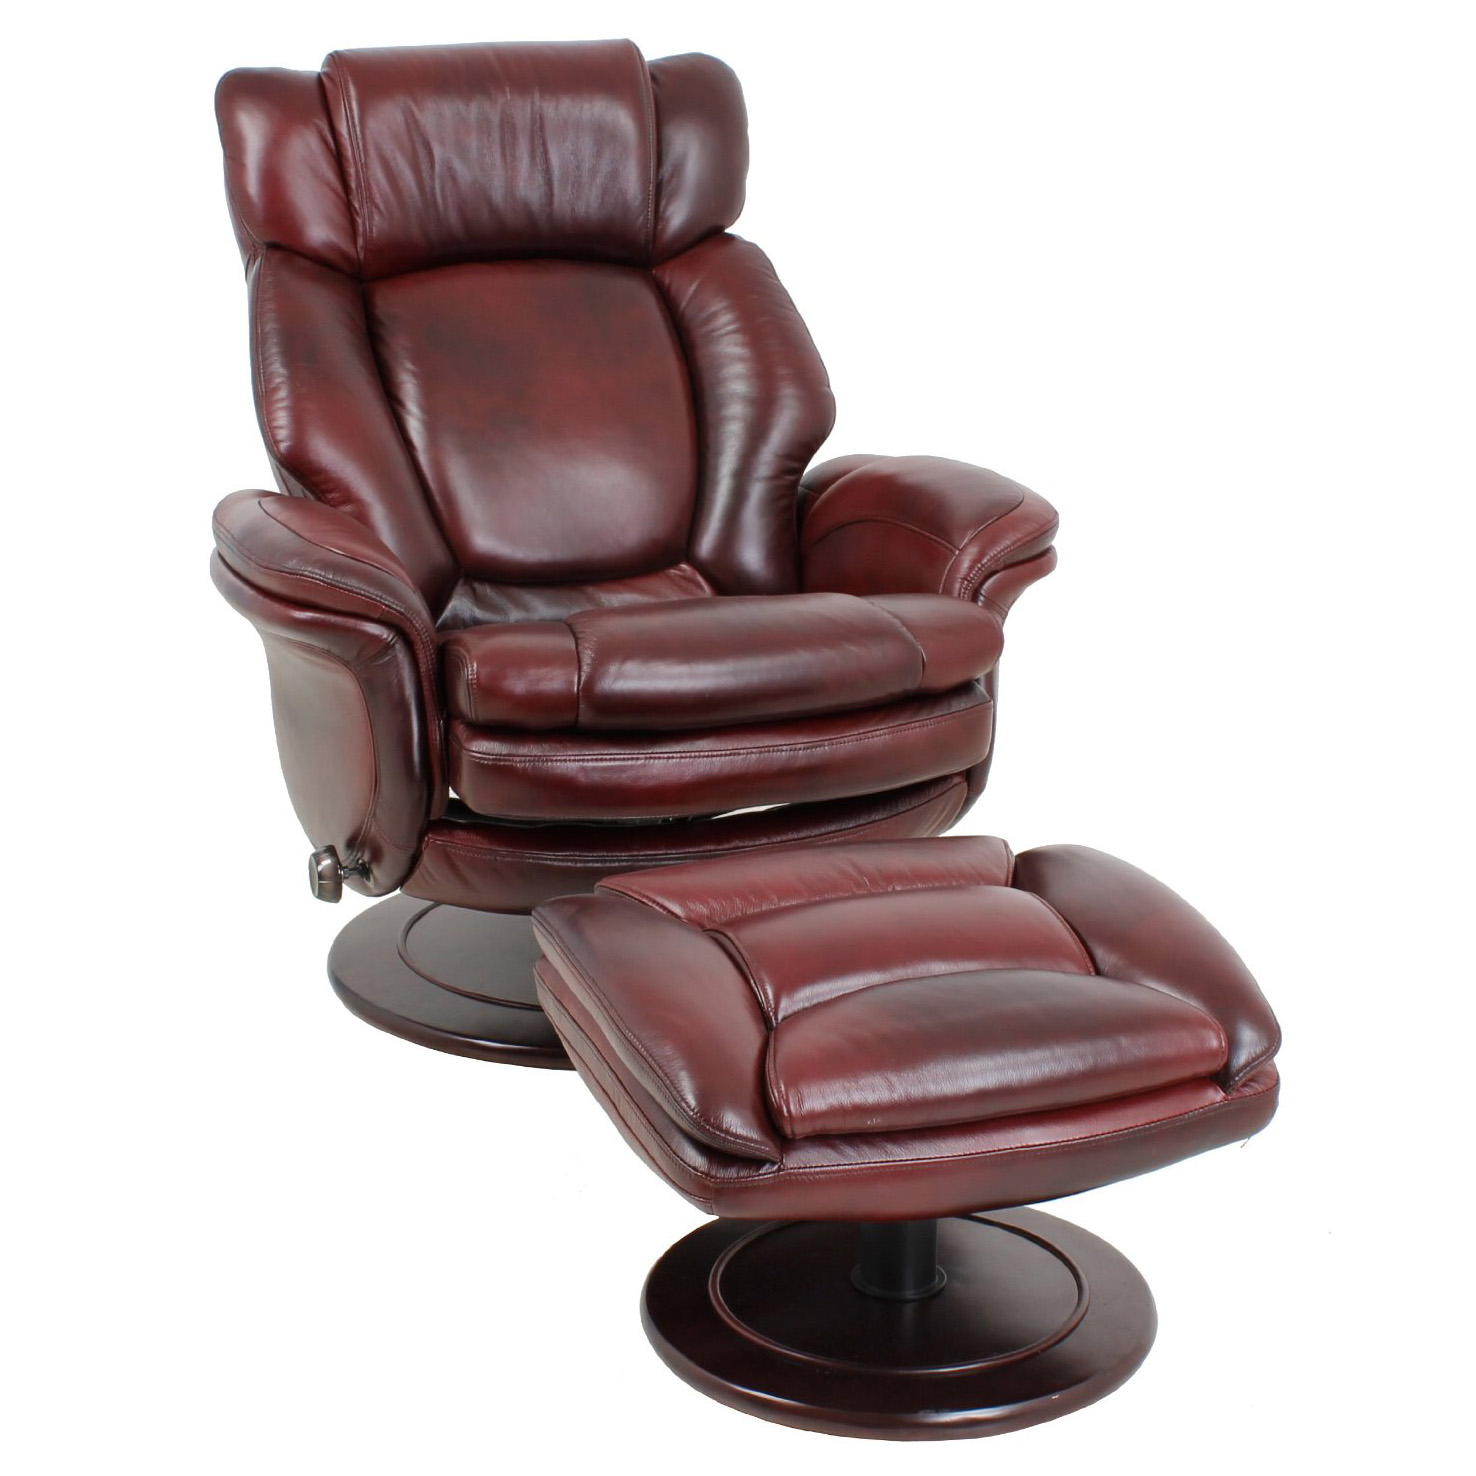 recliner sofas furniture chairs and footstool tall chocolat chair big sutton